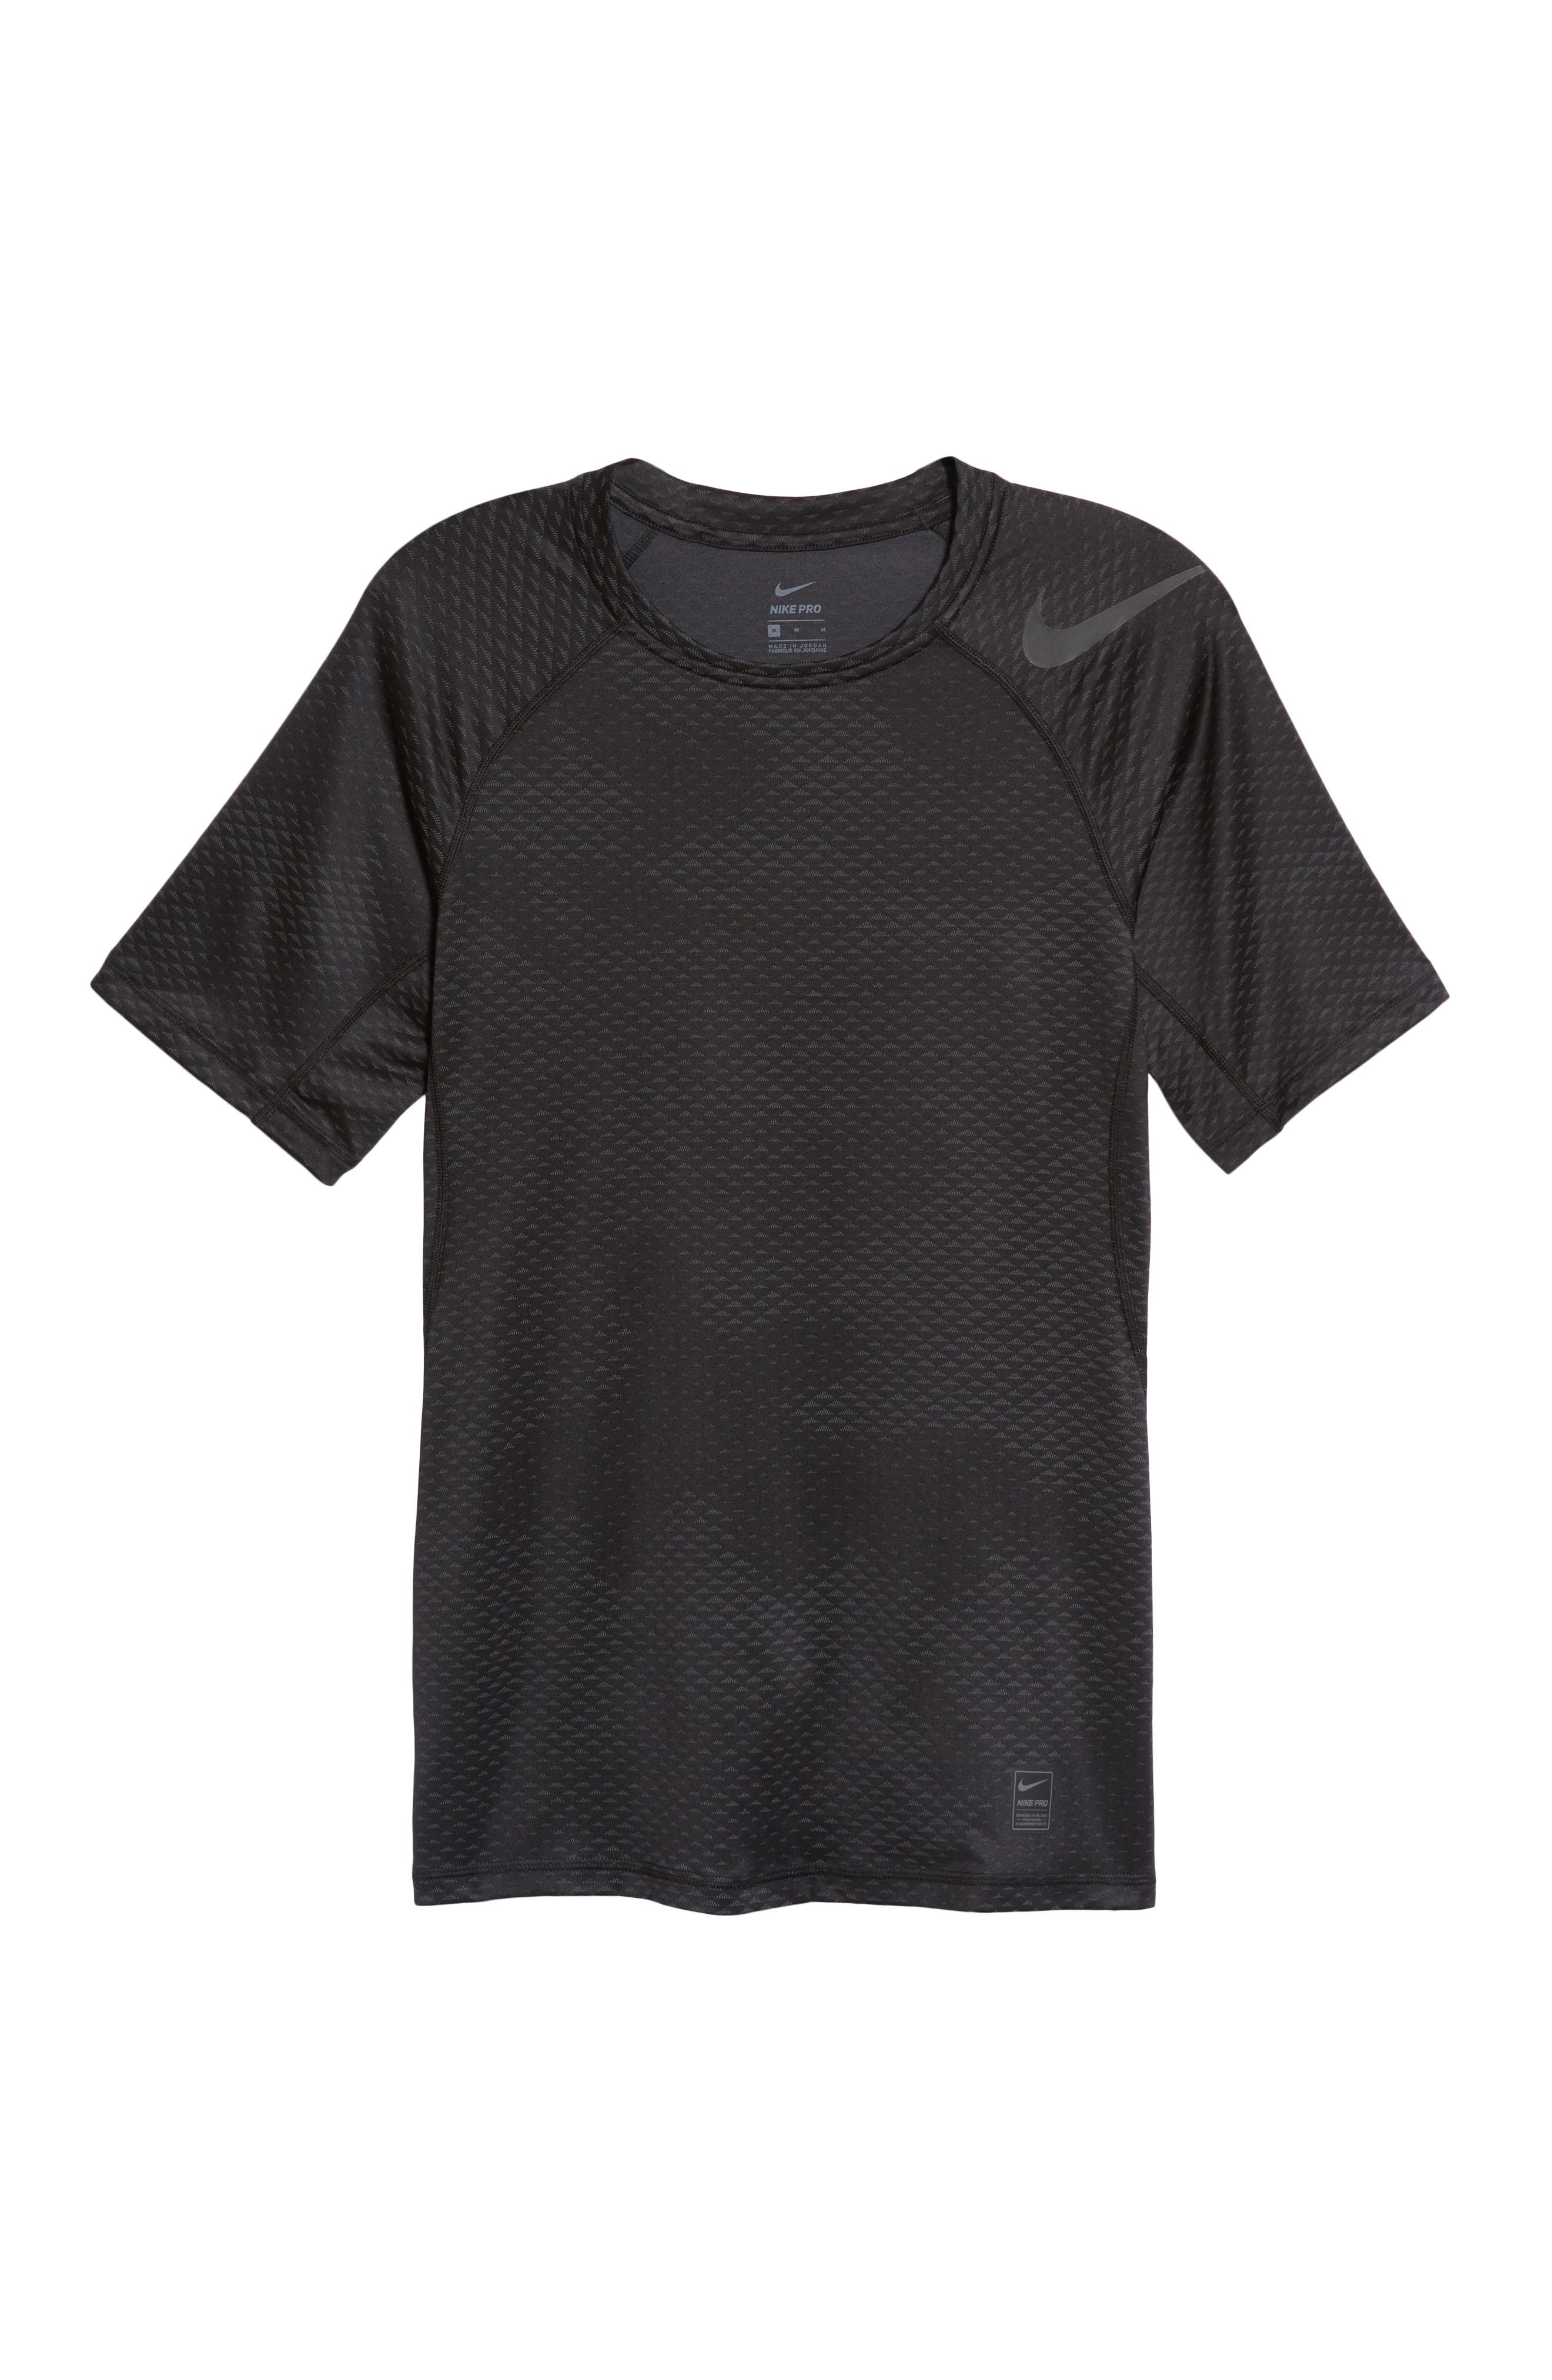 Pro HyperCool Fitted Crewneck T-Shirt,                             Alternate thumbnail 6, color,                             010